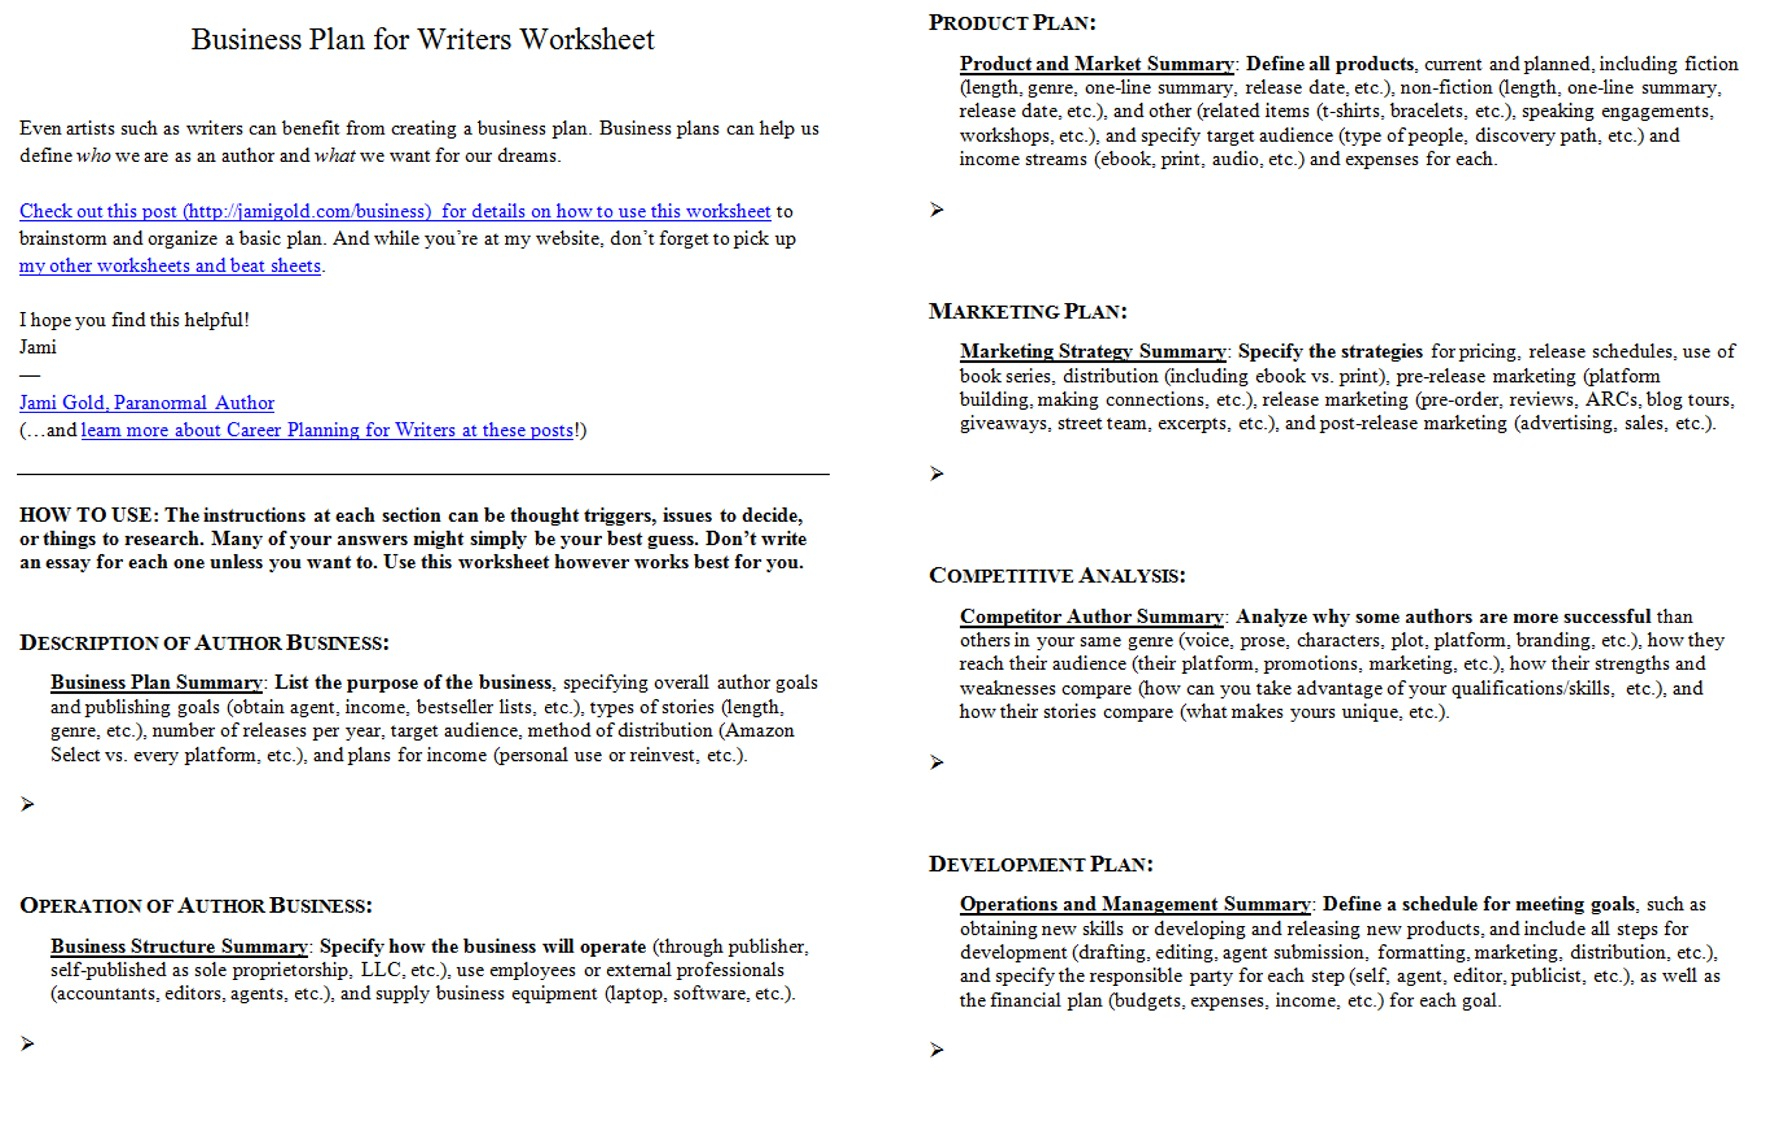 Proatmealus  Personable Worksheets For Writers  Jami Gold Paranormal Author With Inspiring Screen Shot Of Both Pages Of The Business Plan For Writers Worksheet With Endearing The Hobbit Worksheets Also German Worksheets For Beginners In Addition Night Elie Wiesel Worksheets And Free First Grade Writing Worksheets As Well As St Grade Writing Worksheets Free Printable Additionally Multiplying Fractions By Fractions Worksheets From Jamigoldcom With Proatmealus  Inspiring Worksheets For Writers  Jami Gold Paranormal Author With Endearing Screen Shot Of Both Pages Of The Business Plan For Writers Worksheet And Personable The Hobbit Worksheets Also German Worksheets For Beginners In Addition Night Elie Wiesel Worksheets From Jamigoldcom